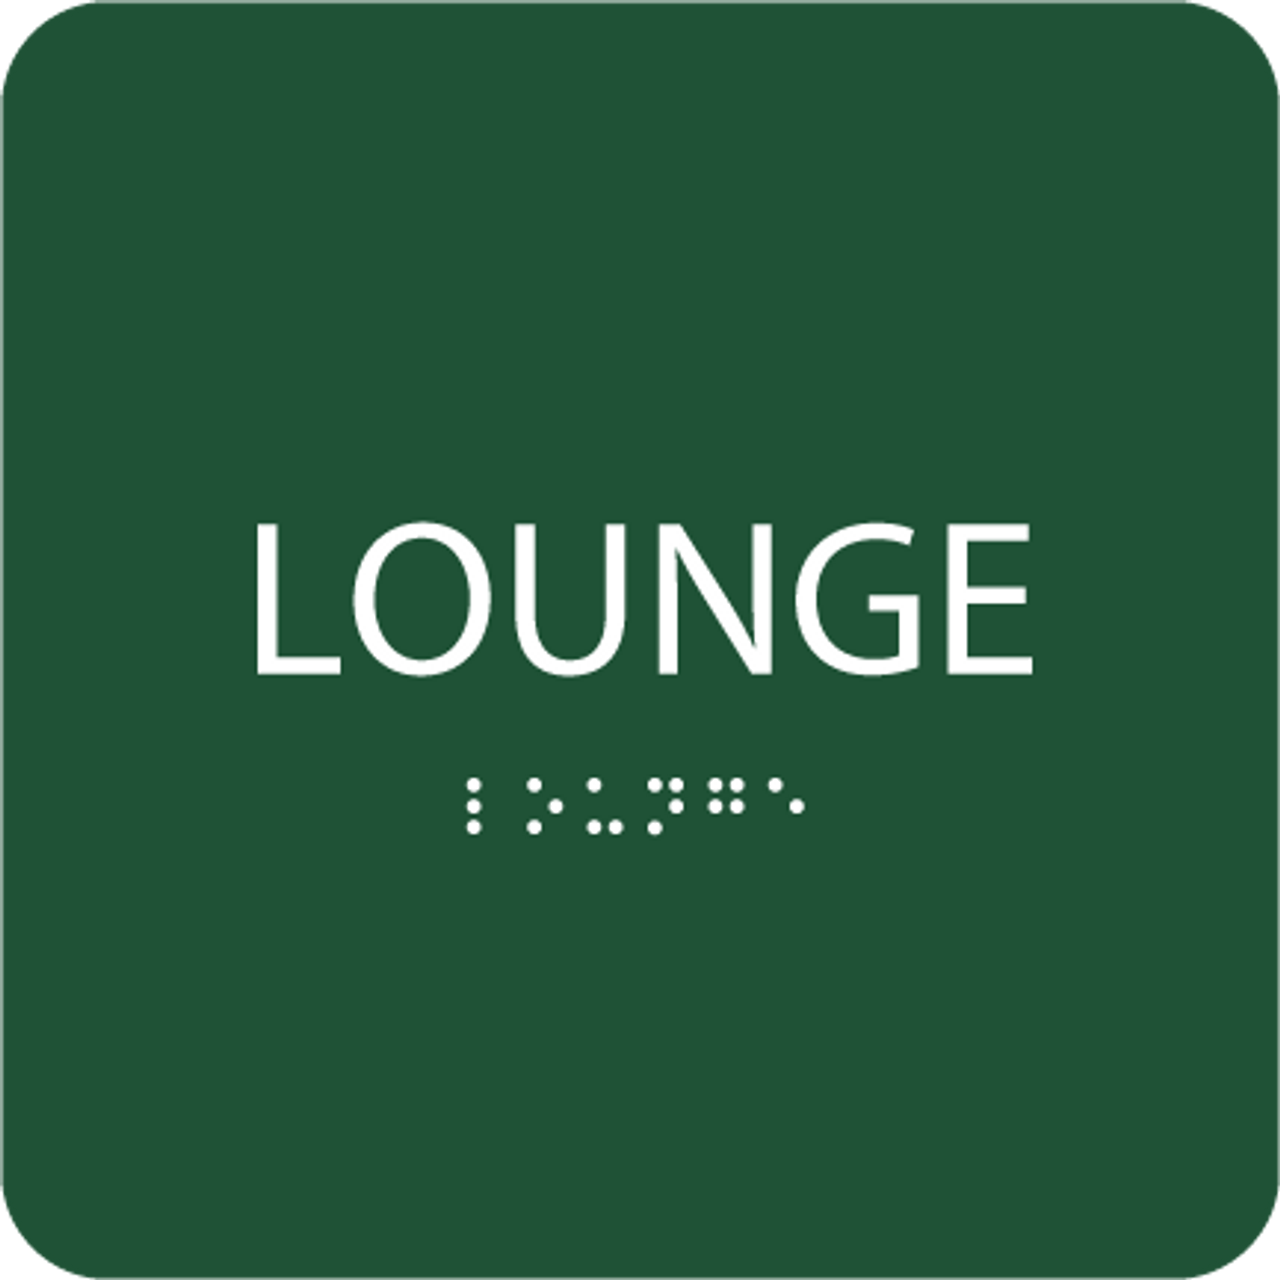 Green Lounge Braille Sign